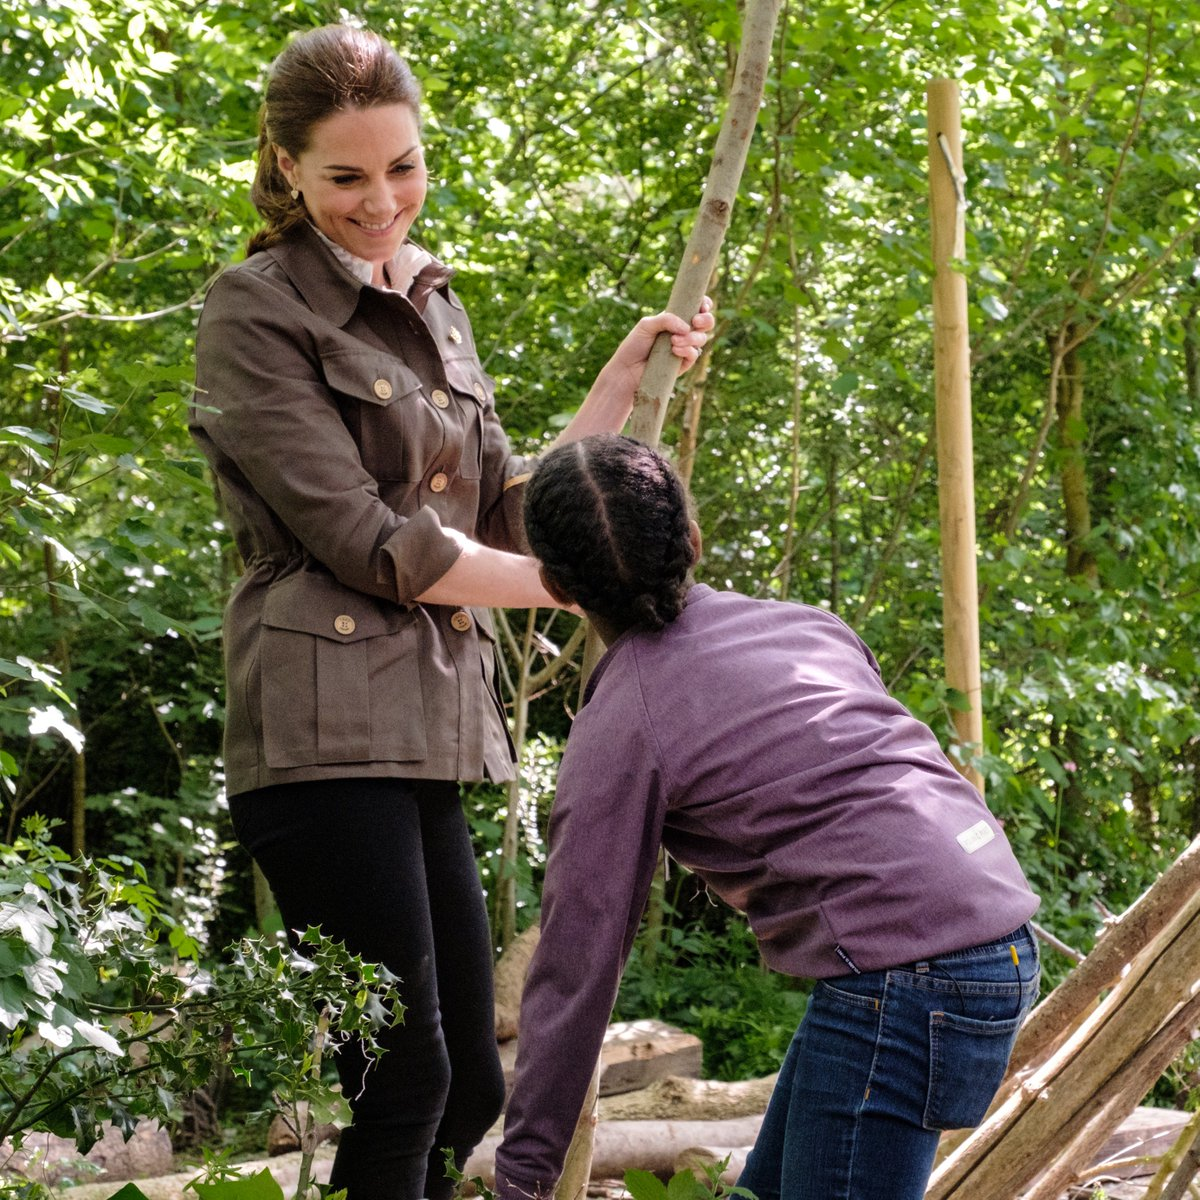 Surprise! Kate Middleton Is Starring in a Kids' Film About Nature